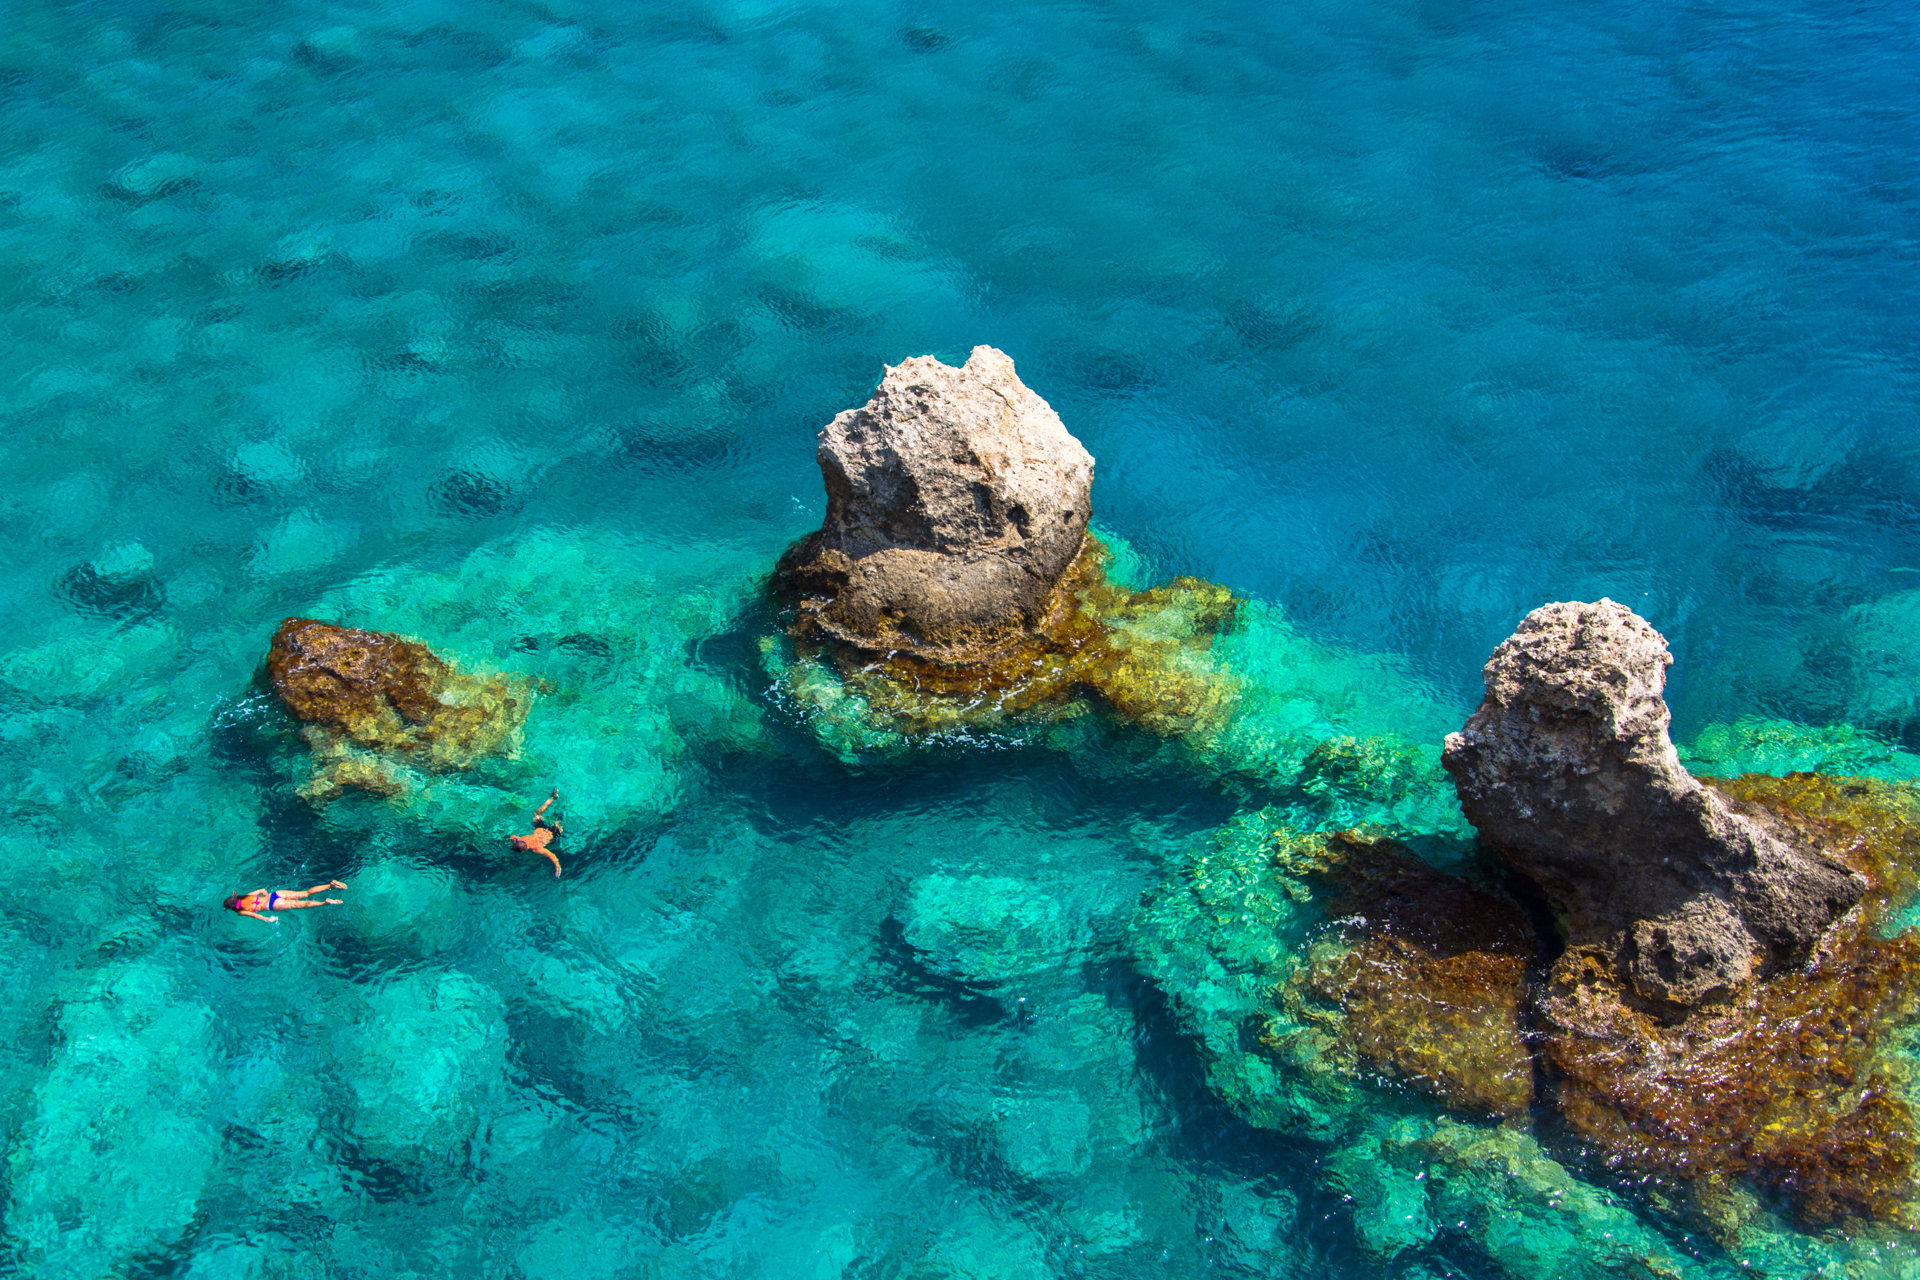 Above view of couple snorkeling in turquoise sea water, Glyka Nera, Chania